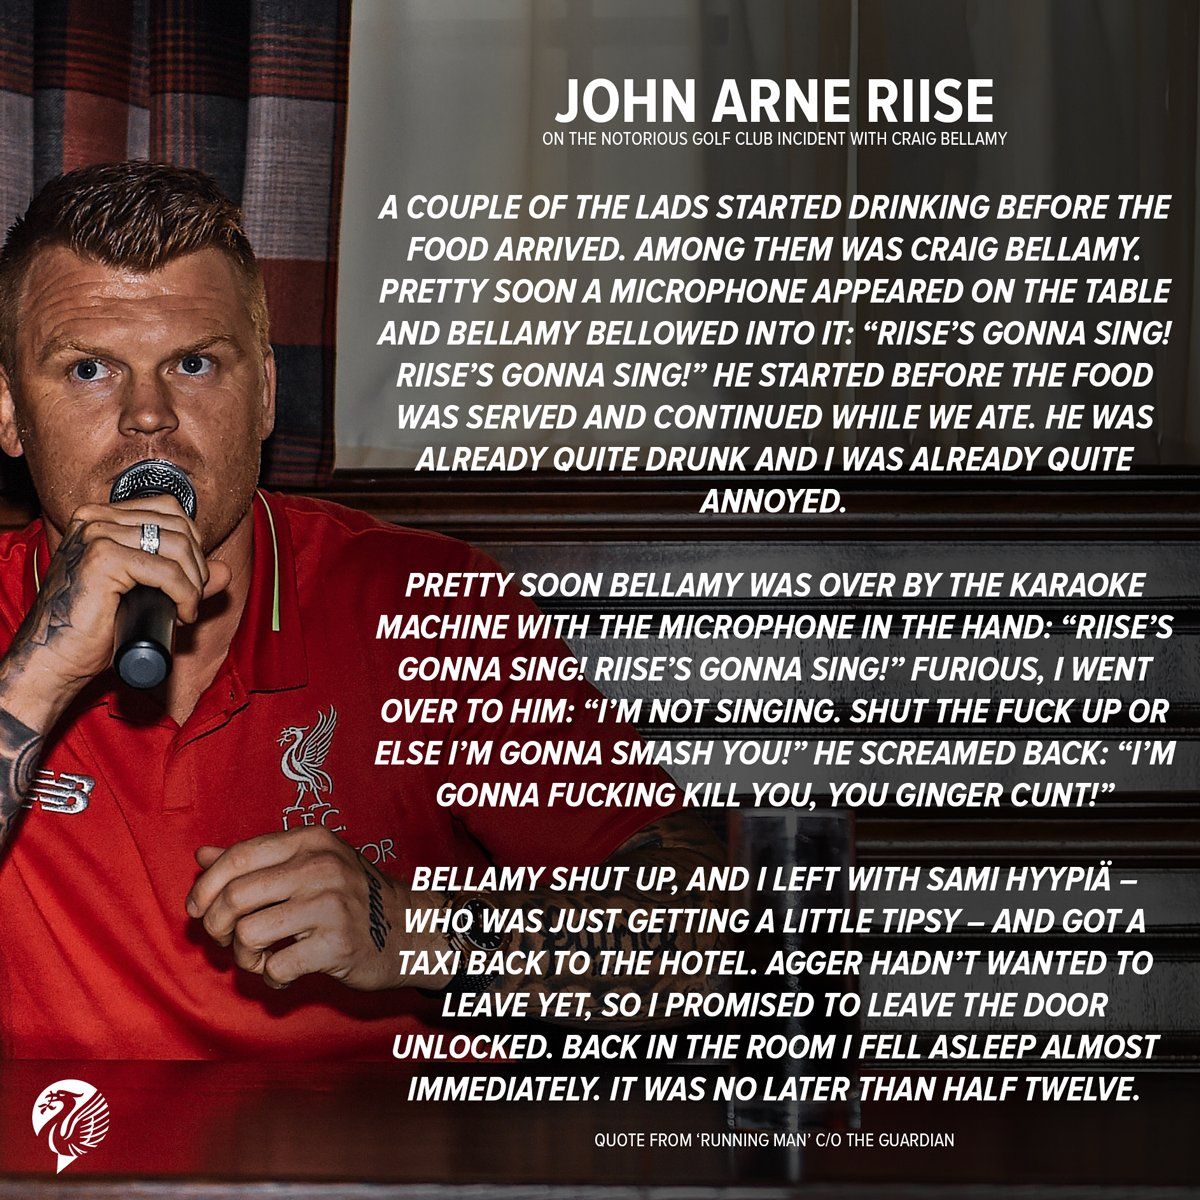 Lfcstuff On Twitter John Arne Riise Opened Up About His Notorious Golf Club Incident With Craig Bellamy In His New Book Running Man It Lives Up To Expectation Lfc